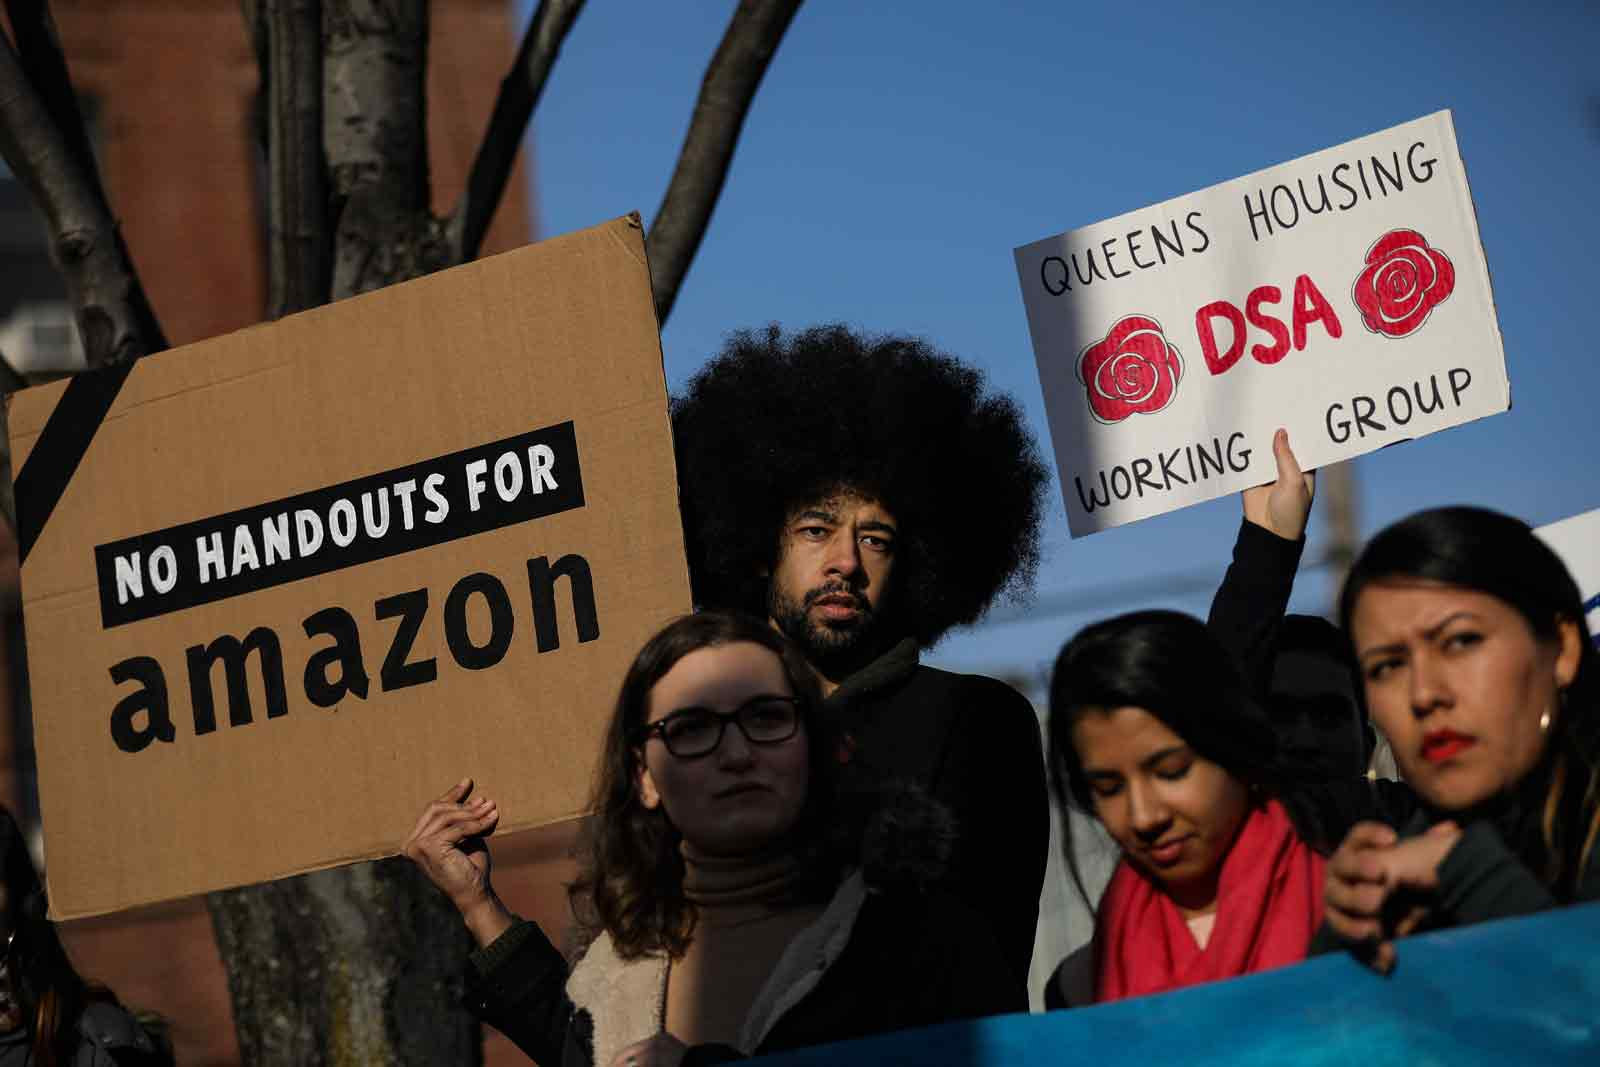 Activists and community members who opposed Amazon's plan to move into Queens rallying in celebration of Amazon's decision to pull out of the deal, Long Island City, Queens, February 14, 2019